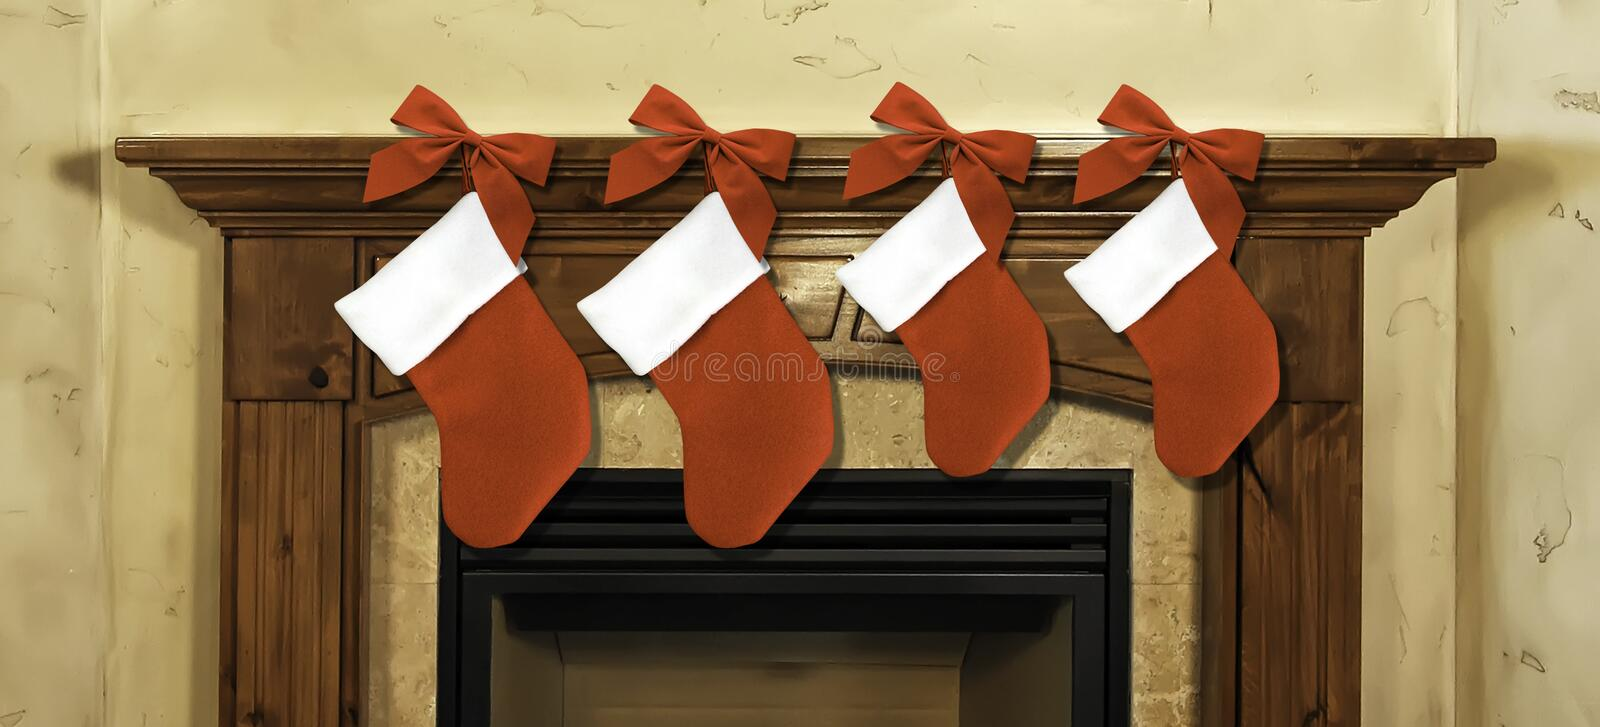 Christmas stockings on mantel. Four red Christmas stockings and red bow hanging along fireplace mantel royalty free stock photos